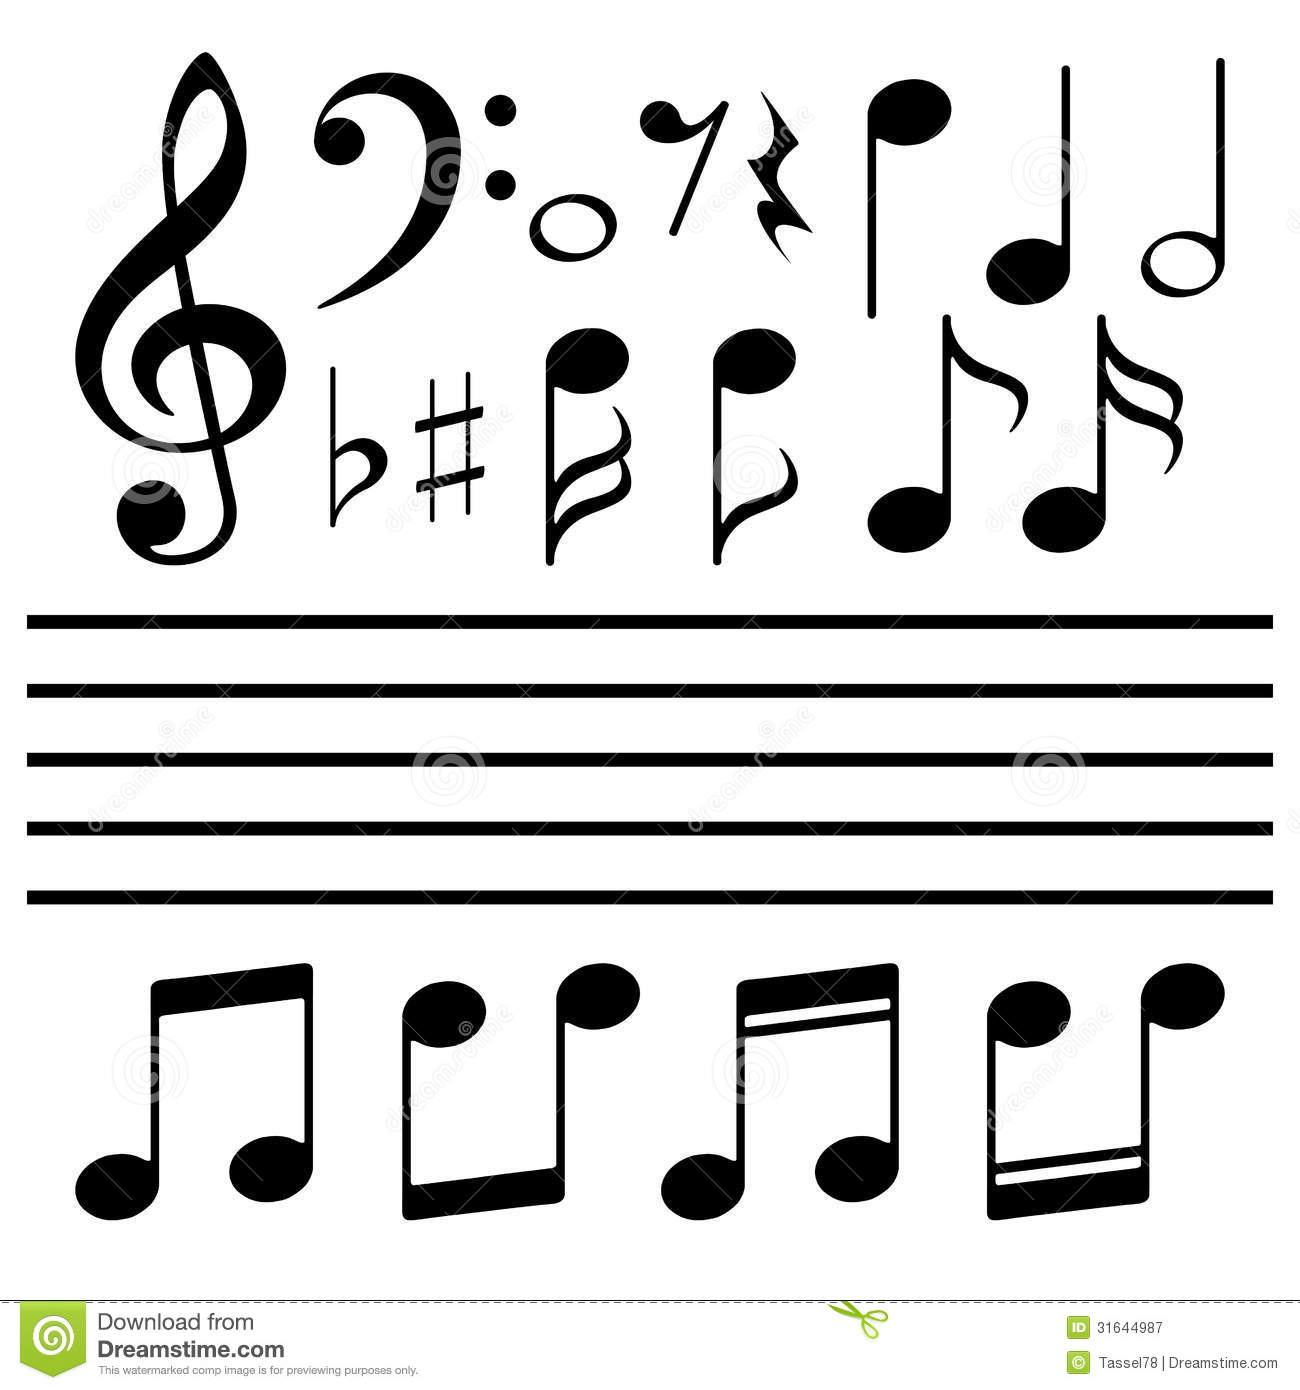 free vector music notes hospi noiseworks co rh hospi noiseworks co vector music note icon vector music notation